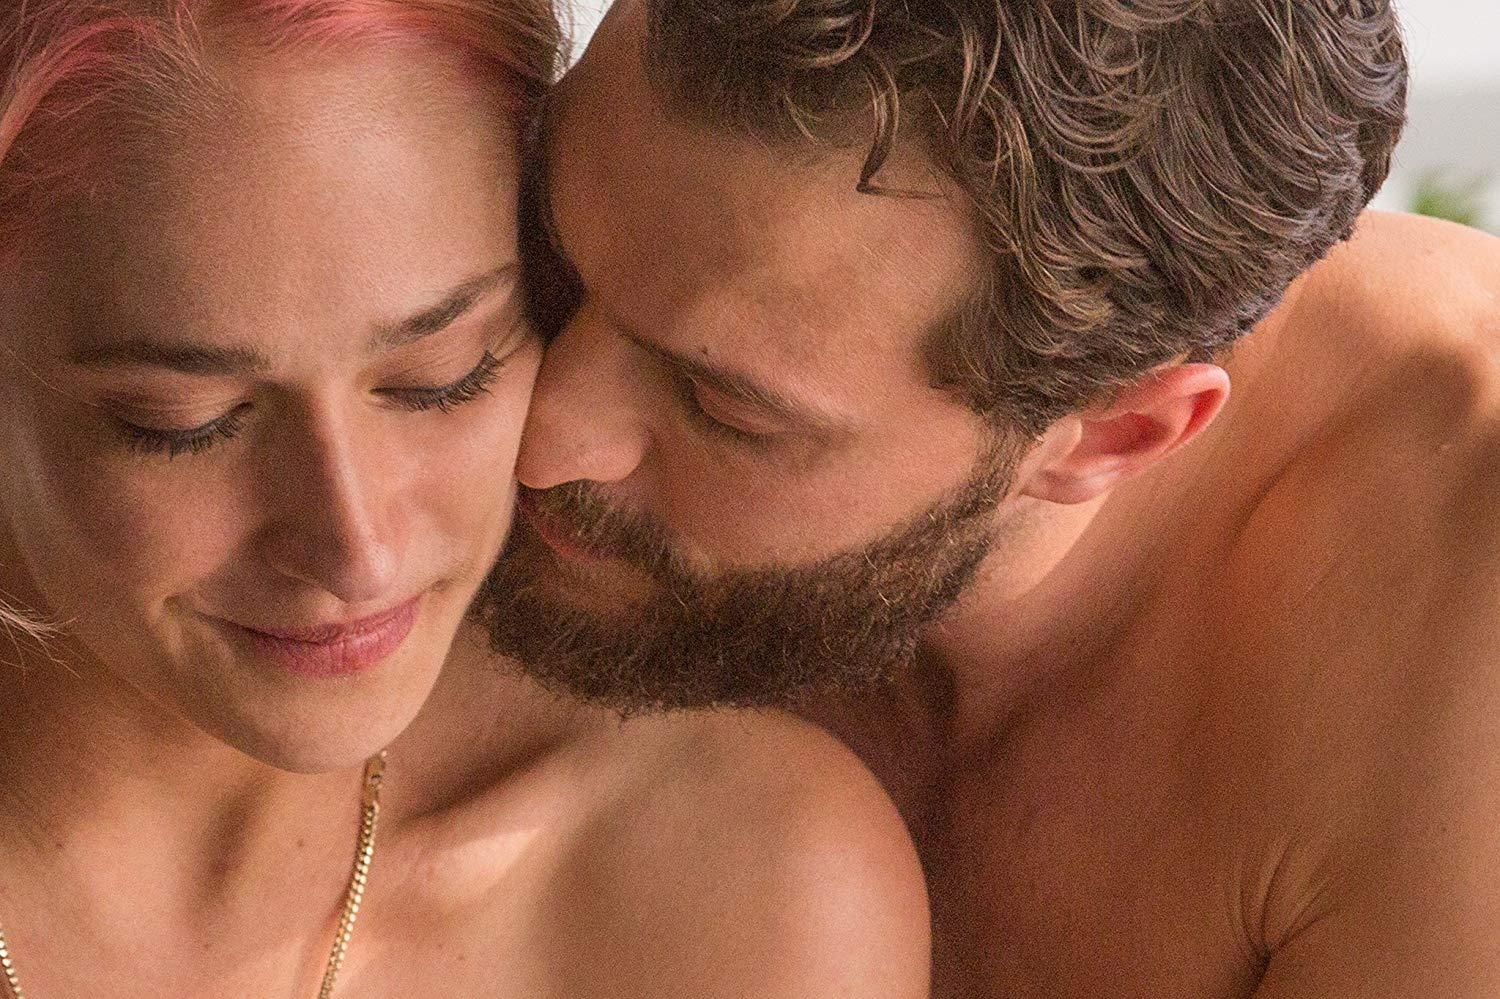 مشاهدة فيلم Untogether (2018) مترجم HD اون لاين